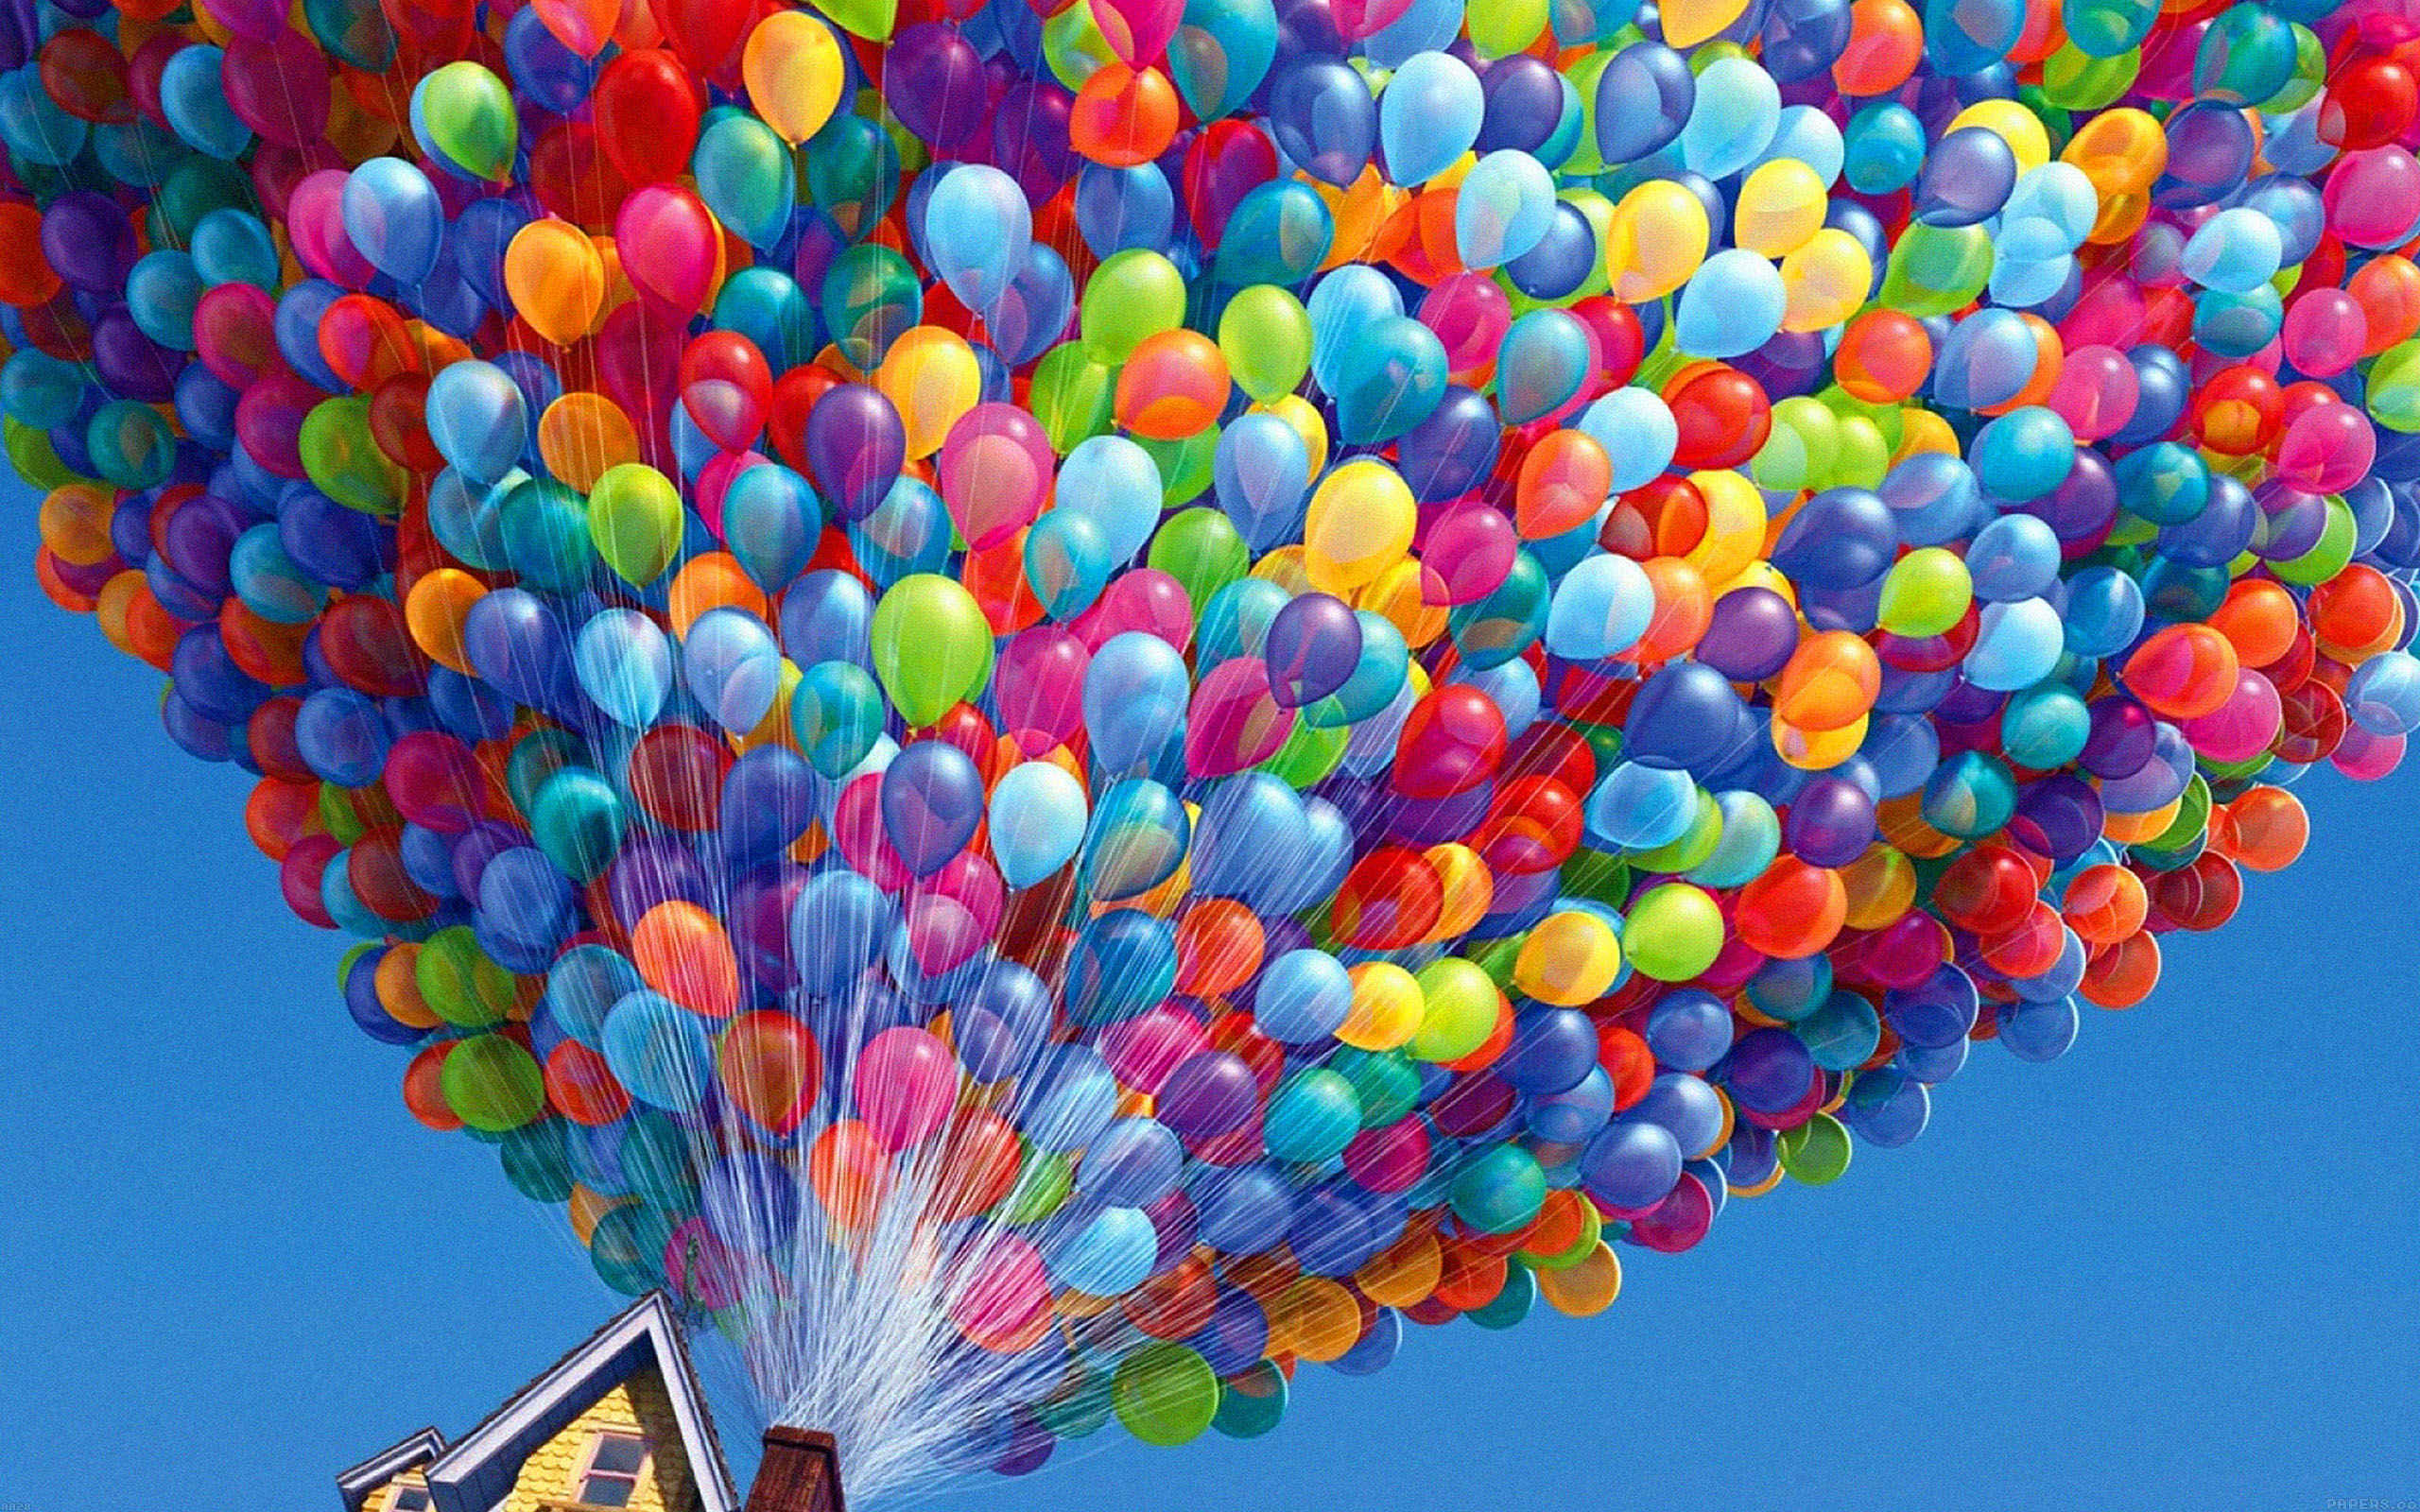 balloons paper essay Hot air balloons brandon barclay april 24, 2002 mr craft engiv research paper outline introduction: part a: explains the structure of the hot air balloon part b: a historical background of the hot air balloonpart c: goes over some the inventions and.